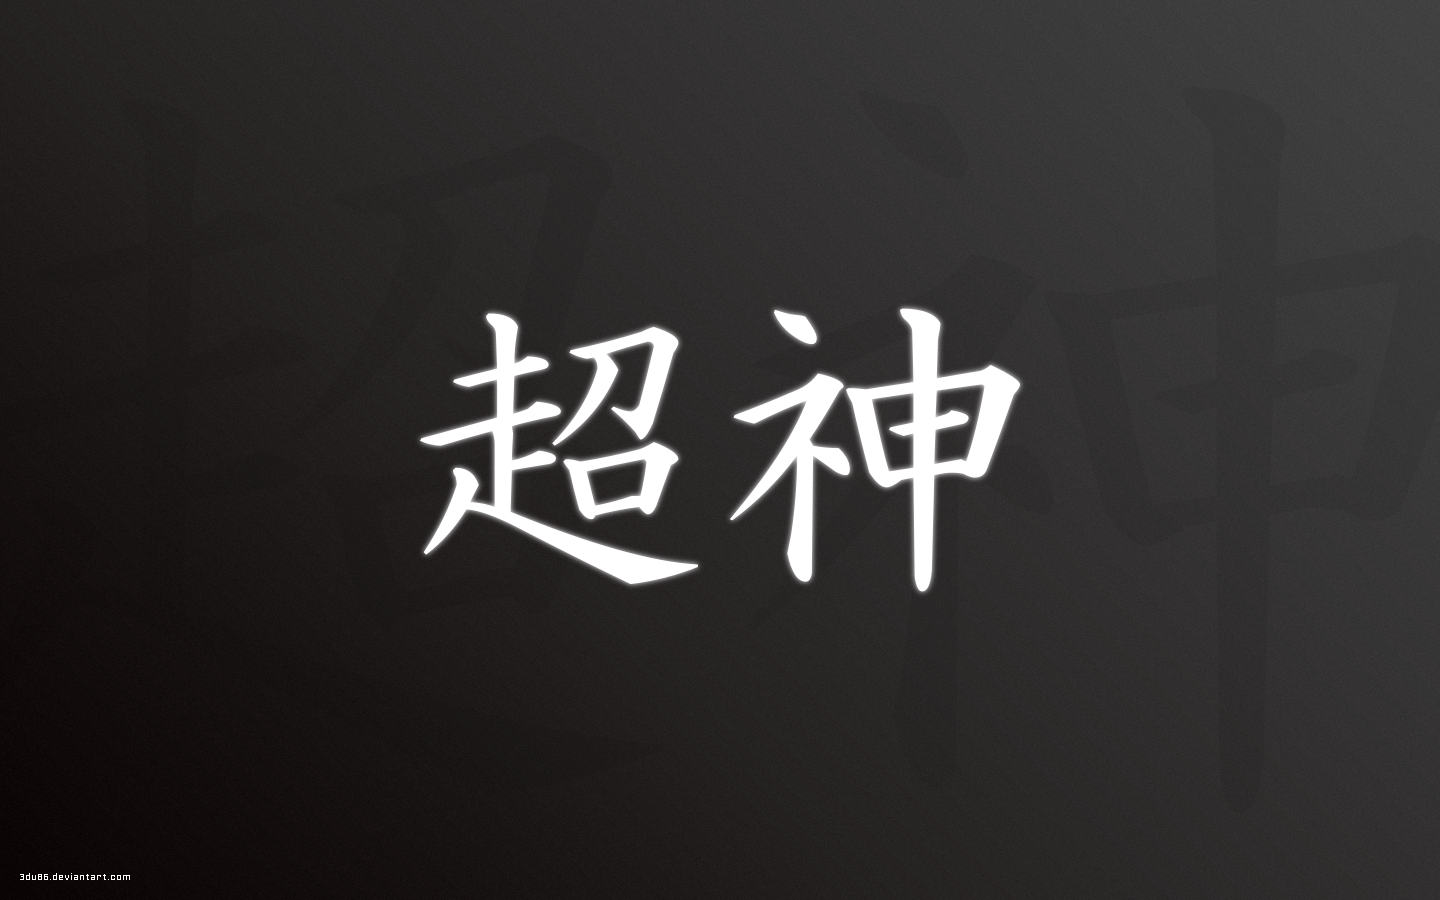 Wallpaper Writing Japanese Writing Wallpapers Top Free Japanese Writing